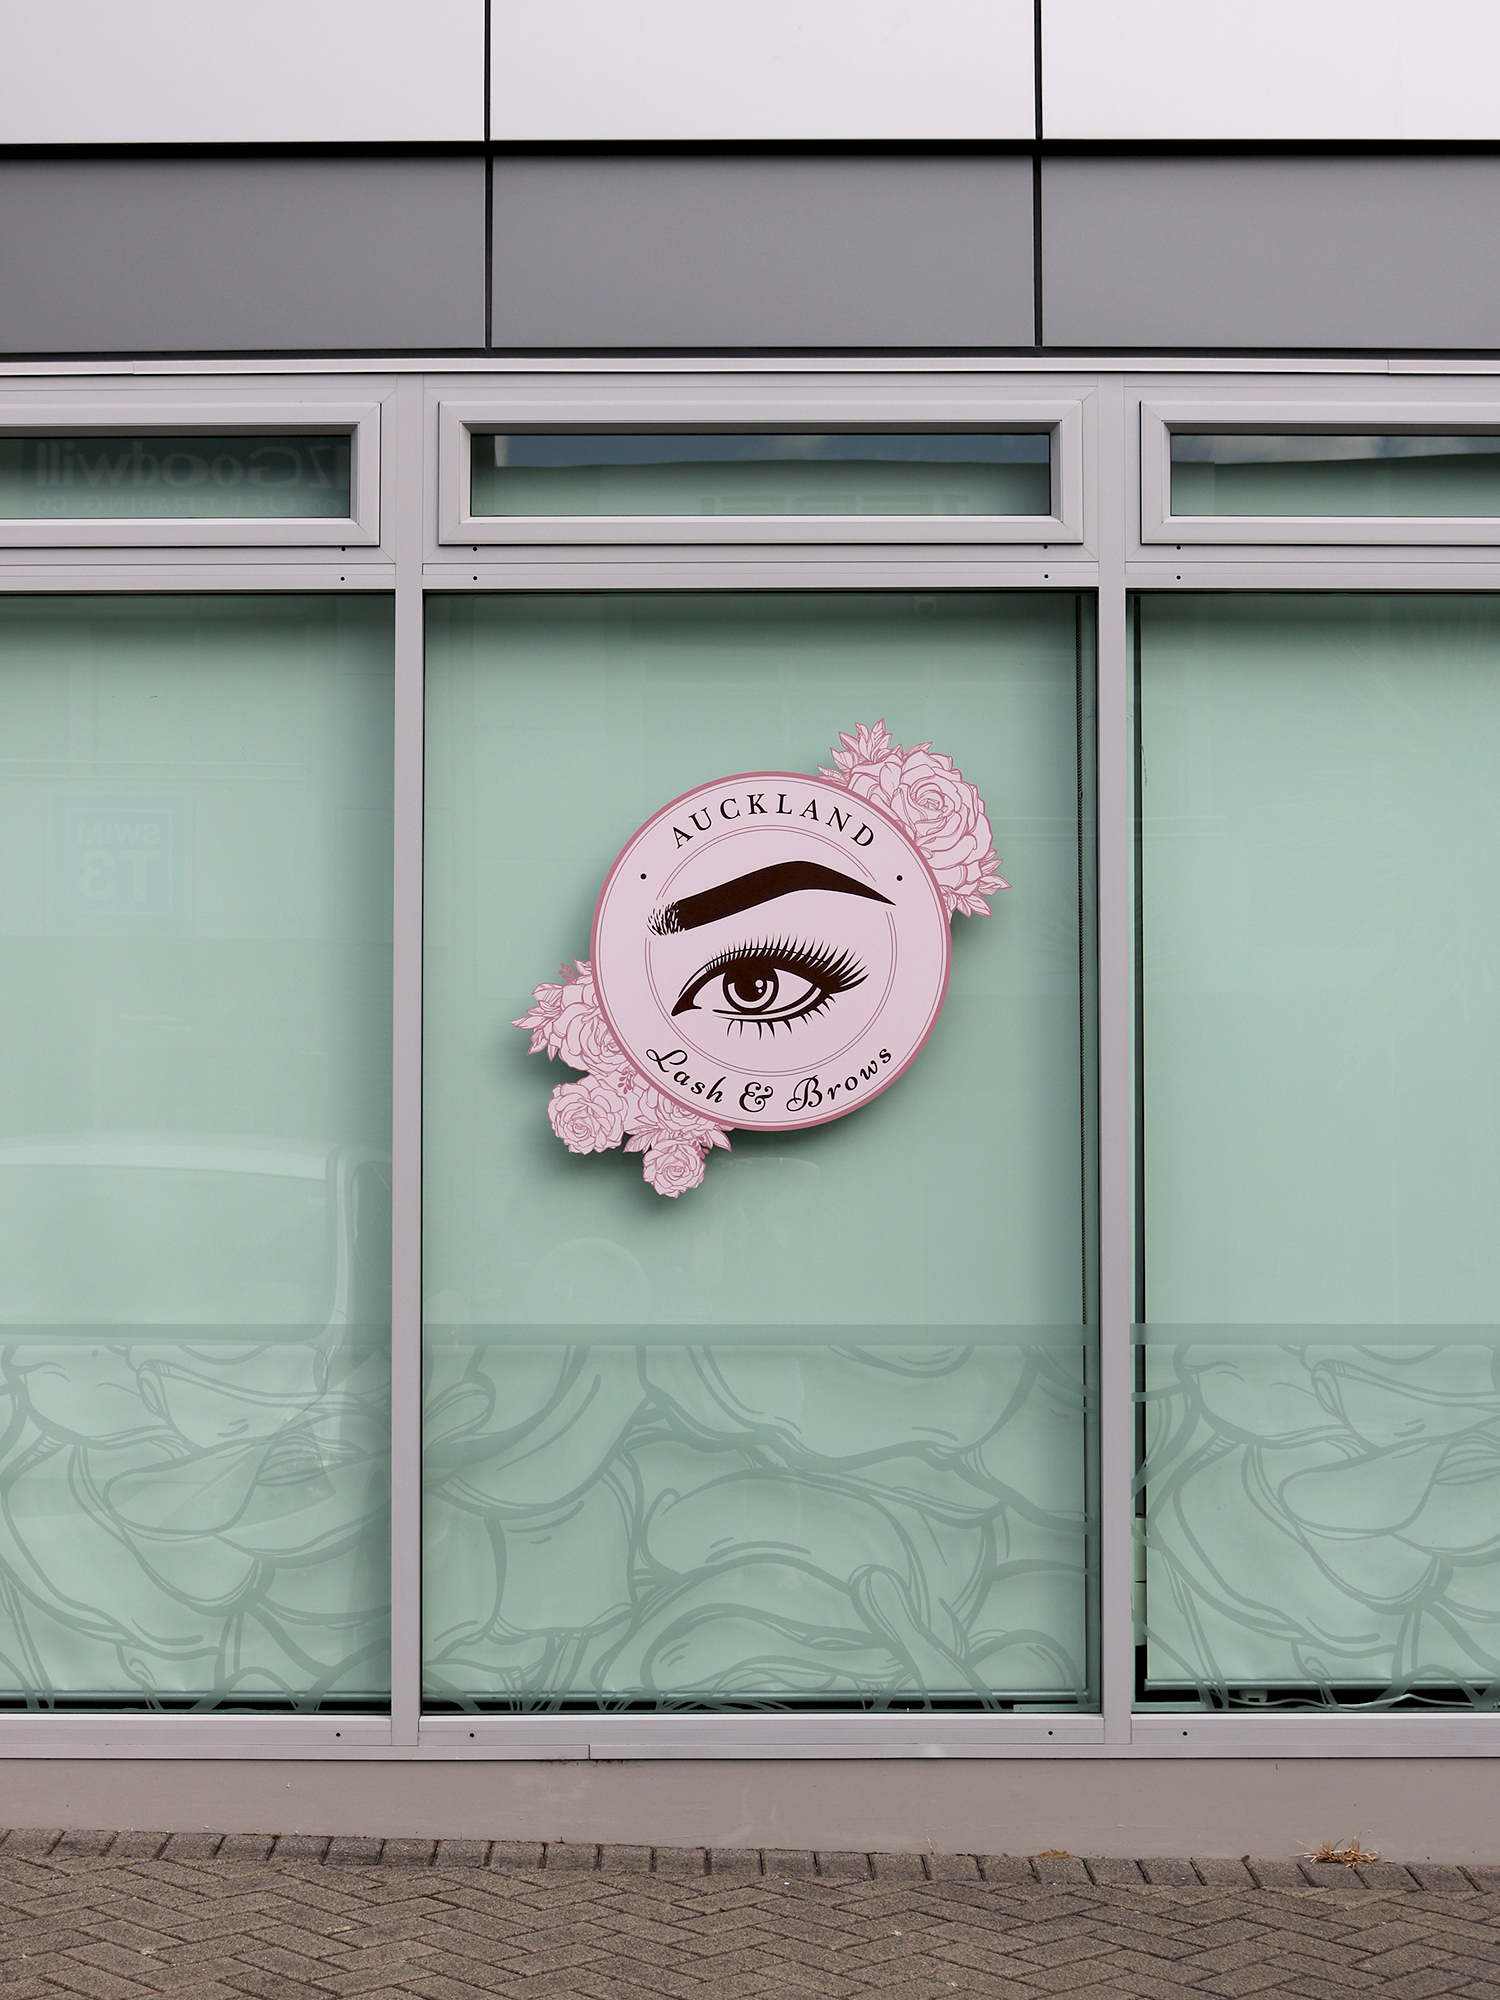 Window signage on the side of the building designed by  Design by Cheyney . Printed and applied by  Speedy Signs